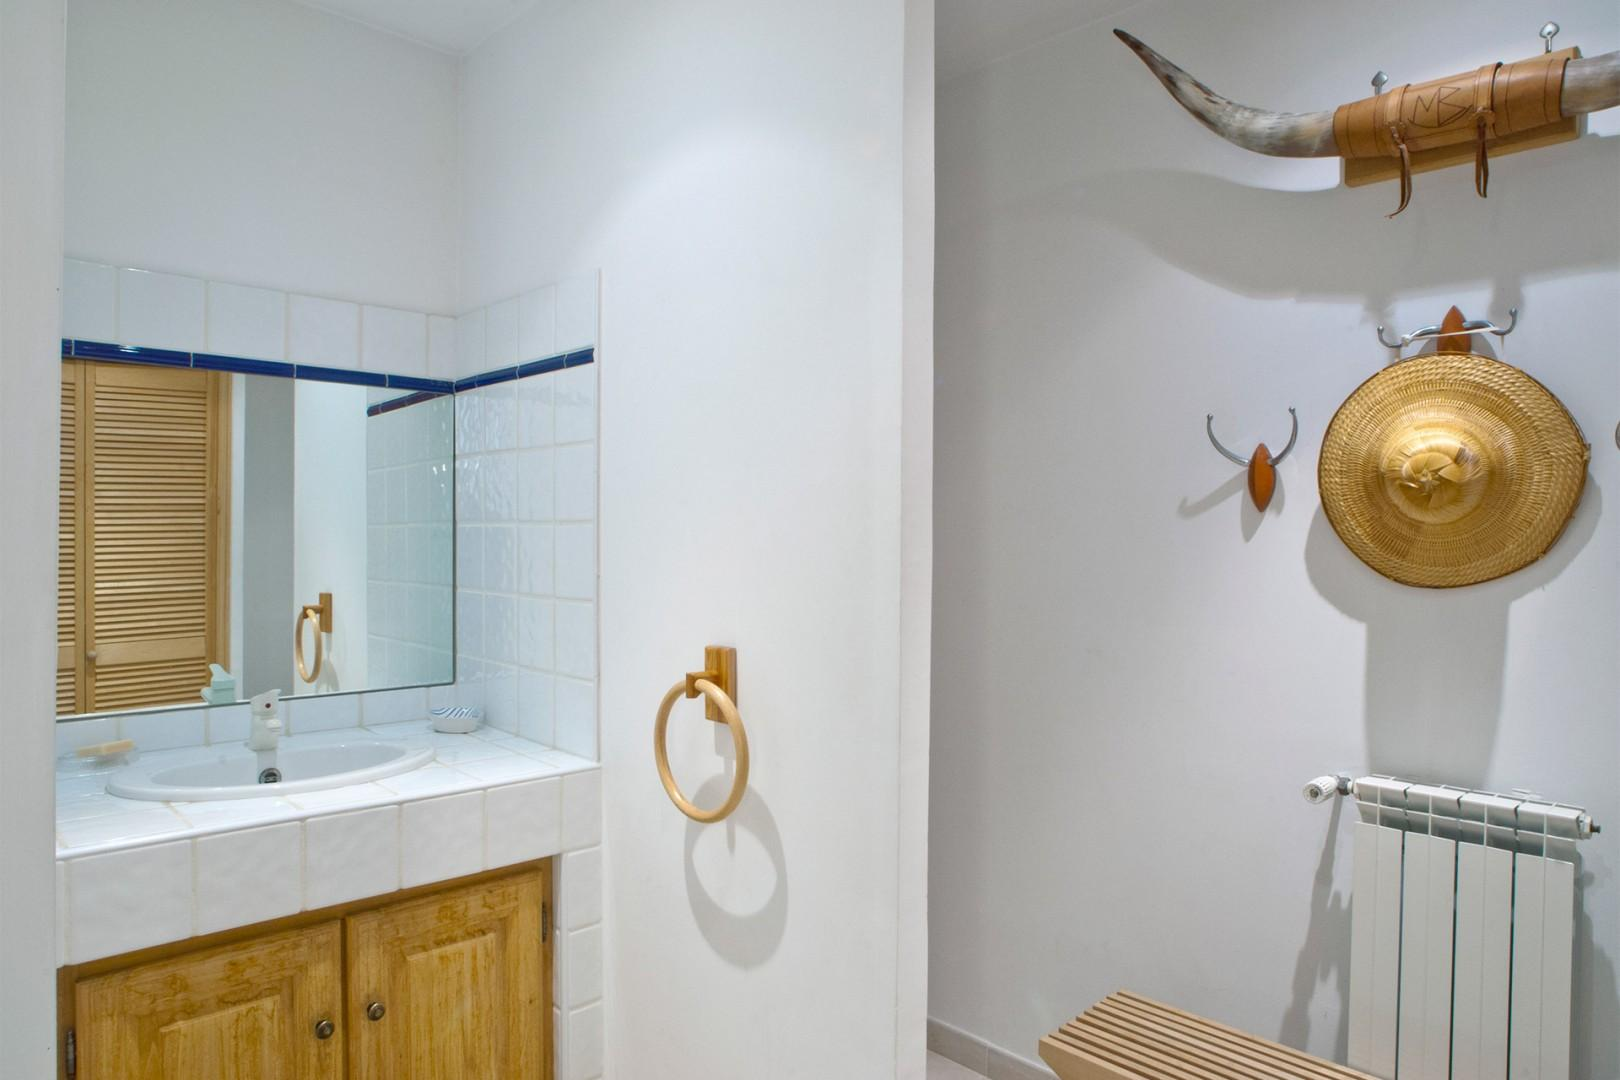 Separate shower and sink in bathroom five located in the pool house